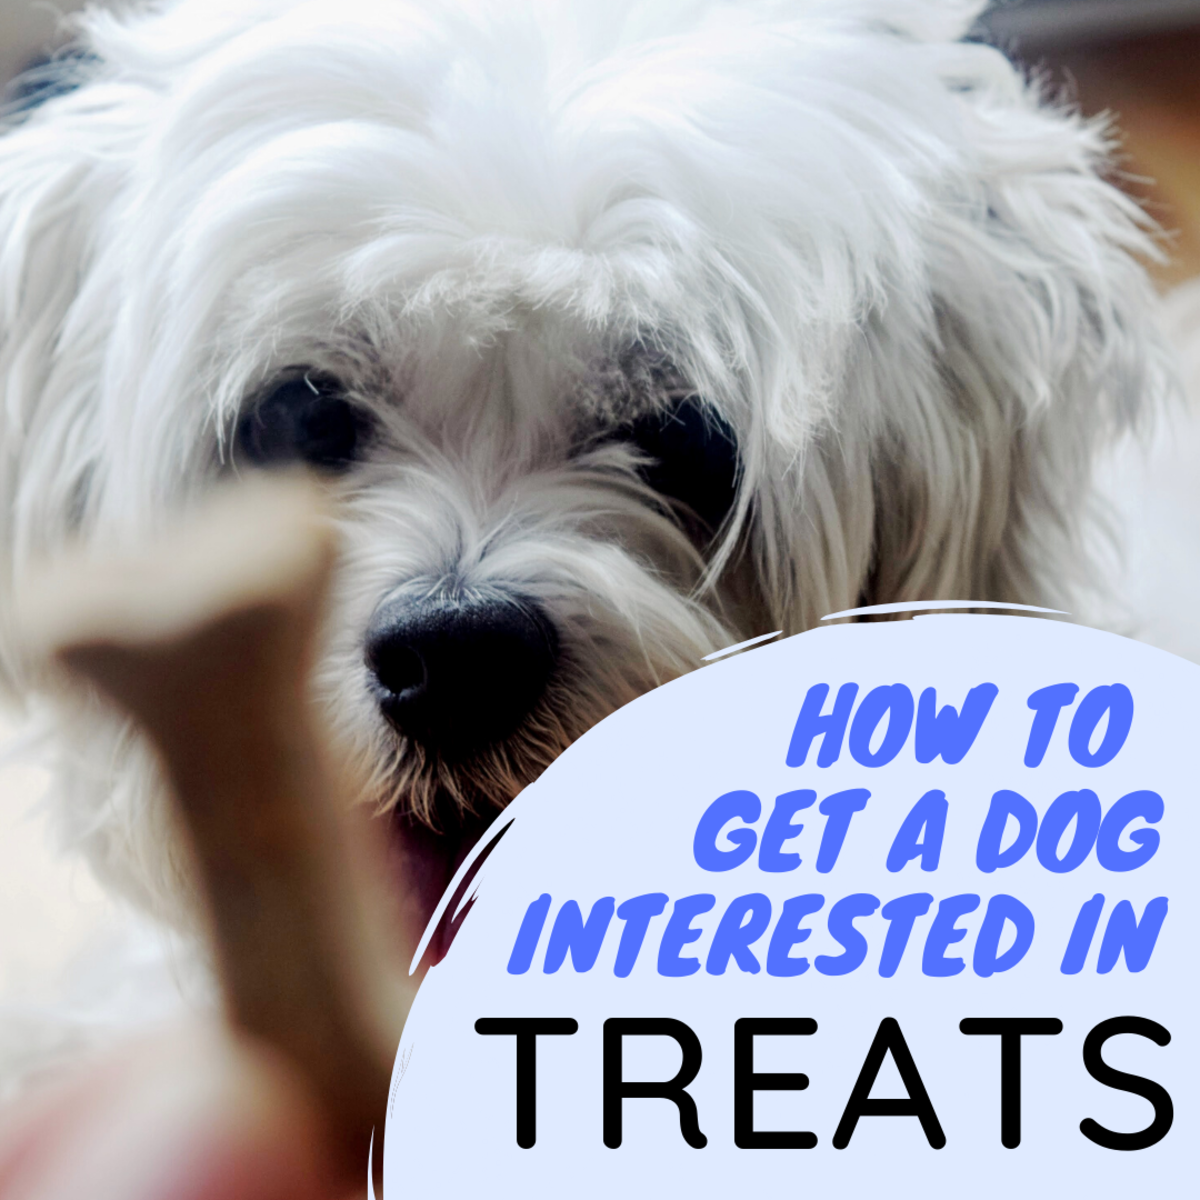 How to Train a Dog That Is Not Food Motivated